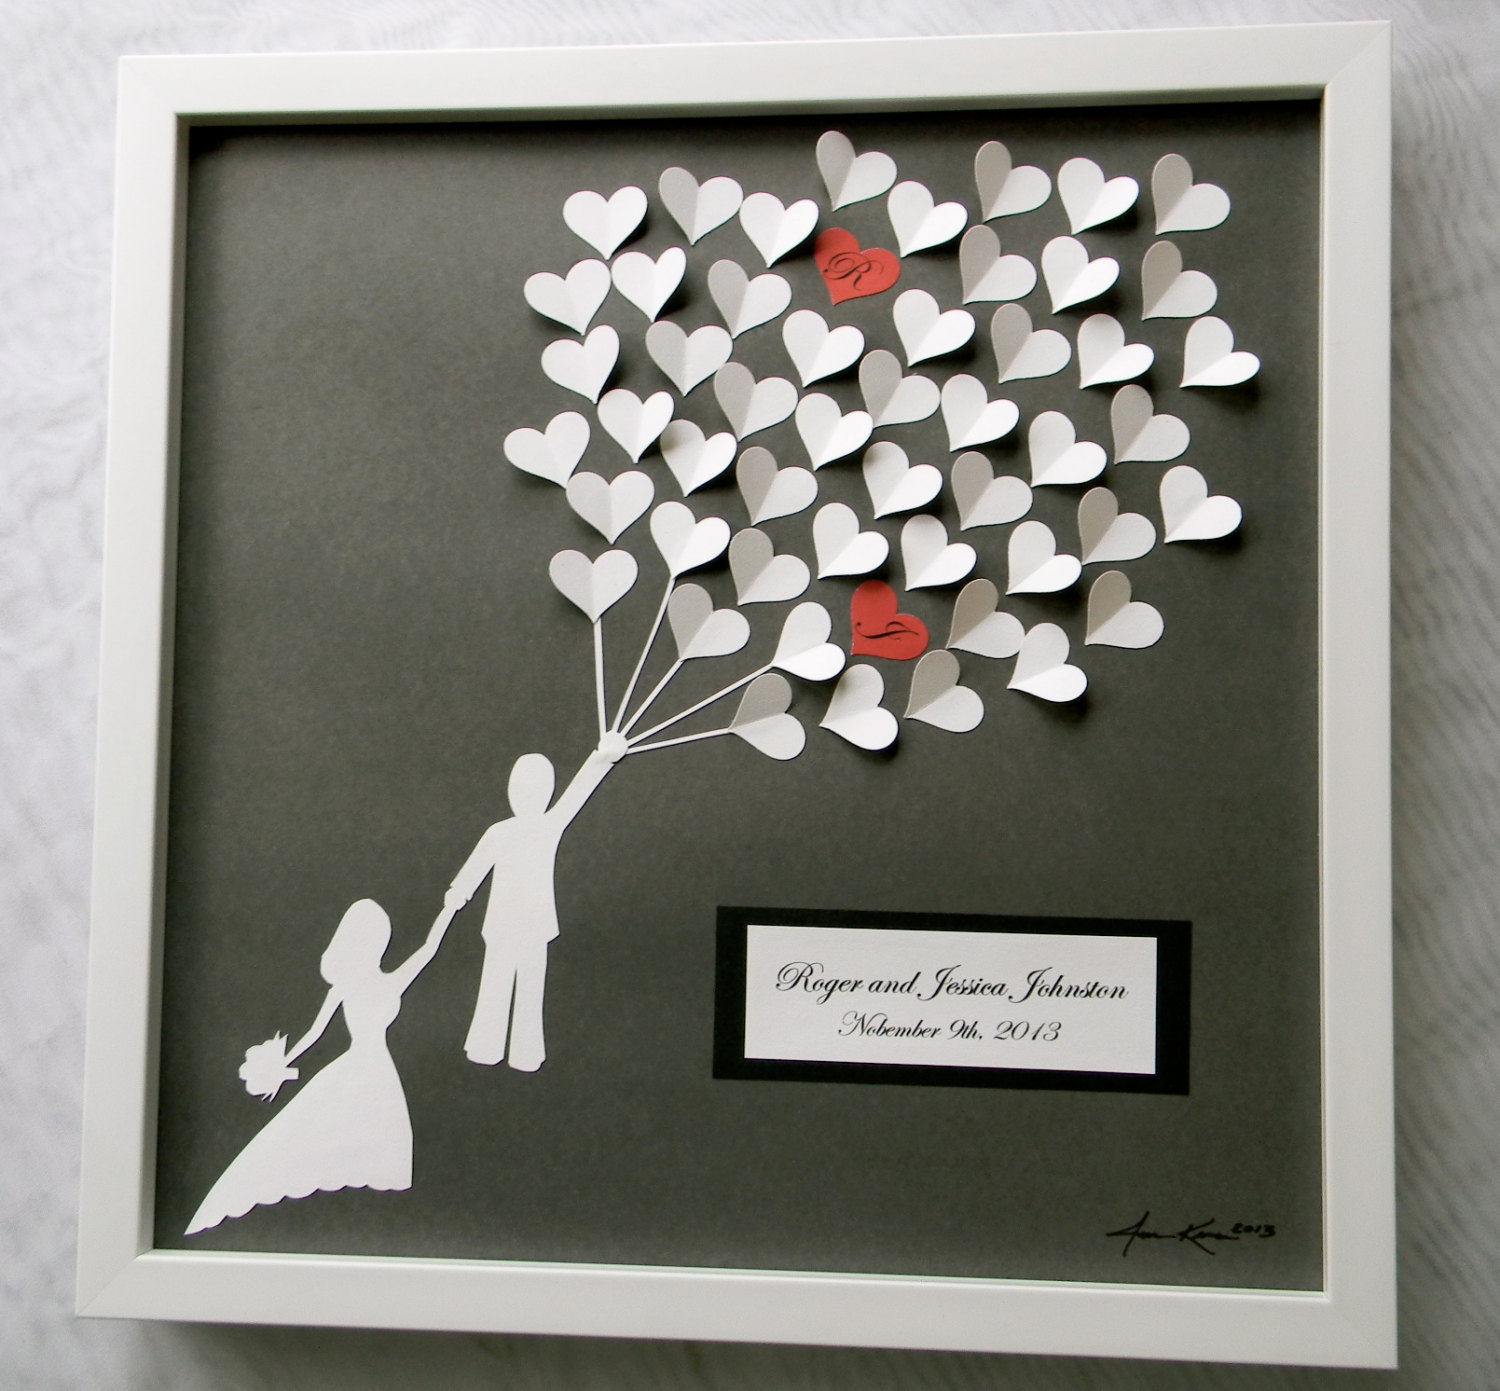 Personalized Wedding Gifts: 25 INETRESTING THANK YOU WEDDING GIFT FOR THE GUESTS